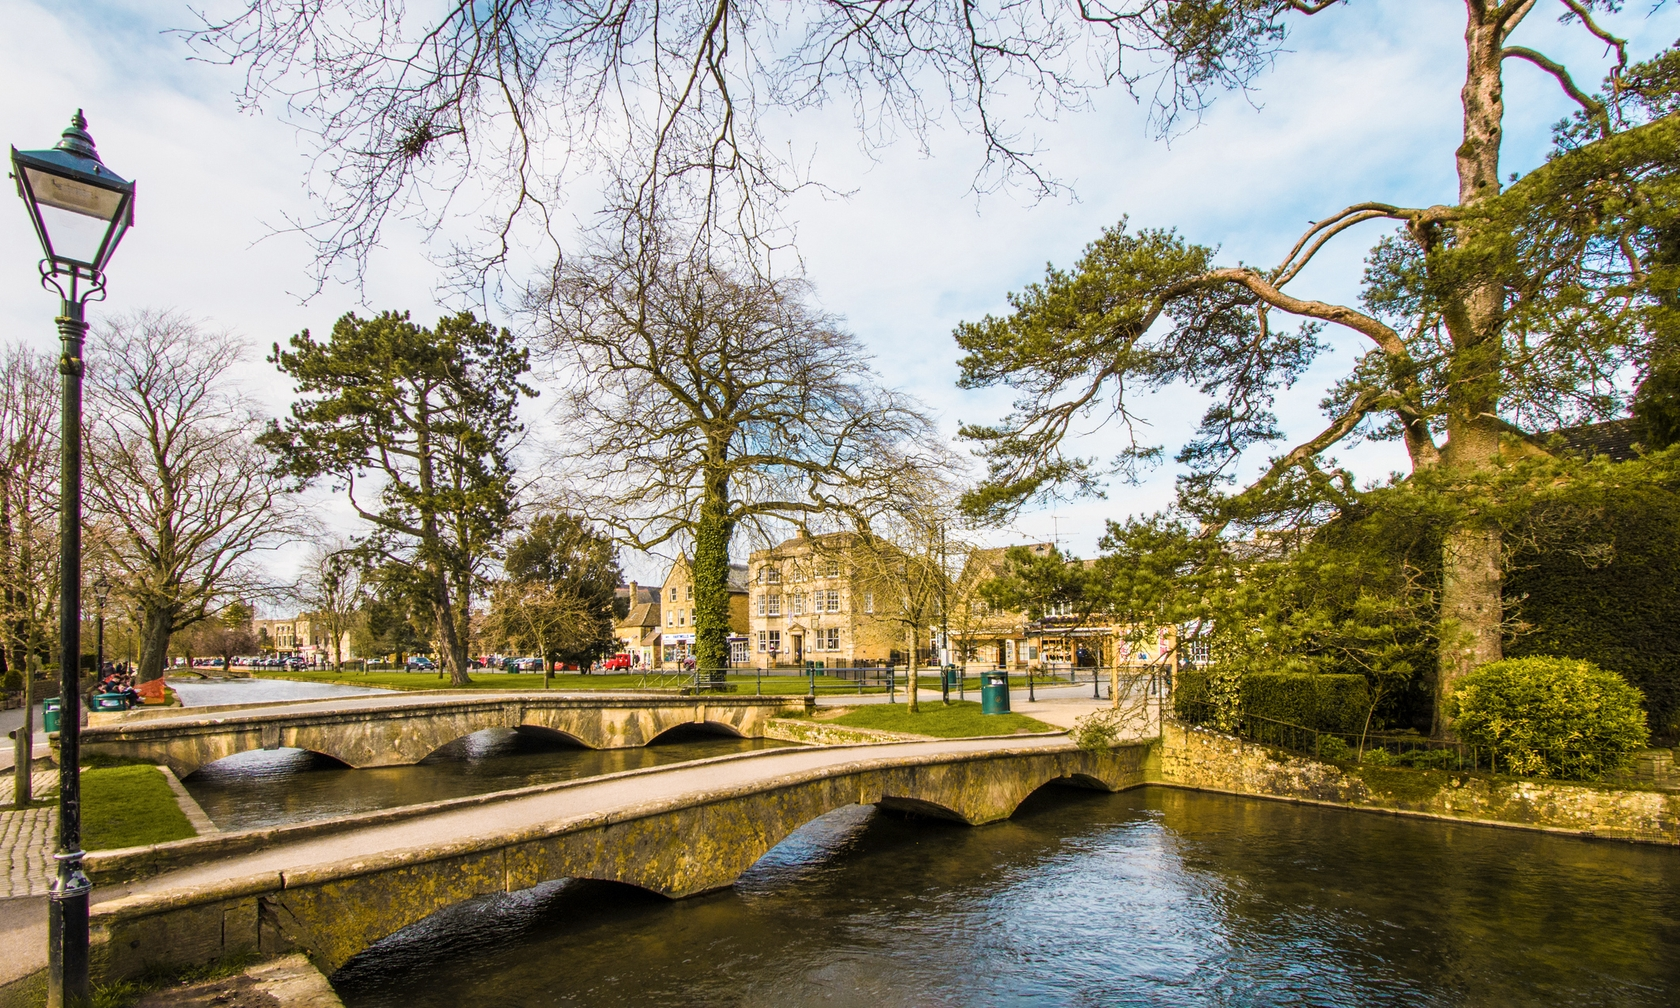 Holiday rental houses in Bourton-on-the-Water